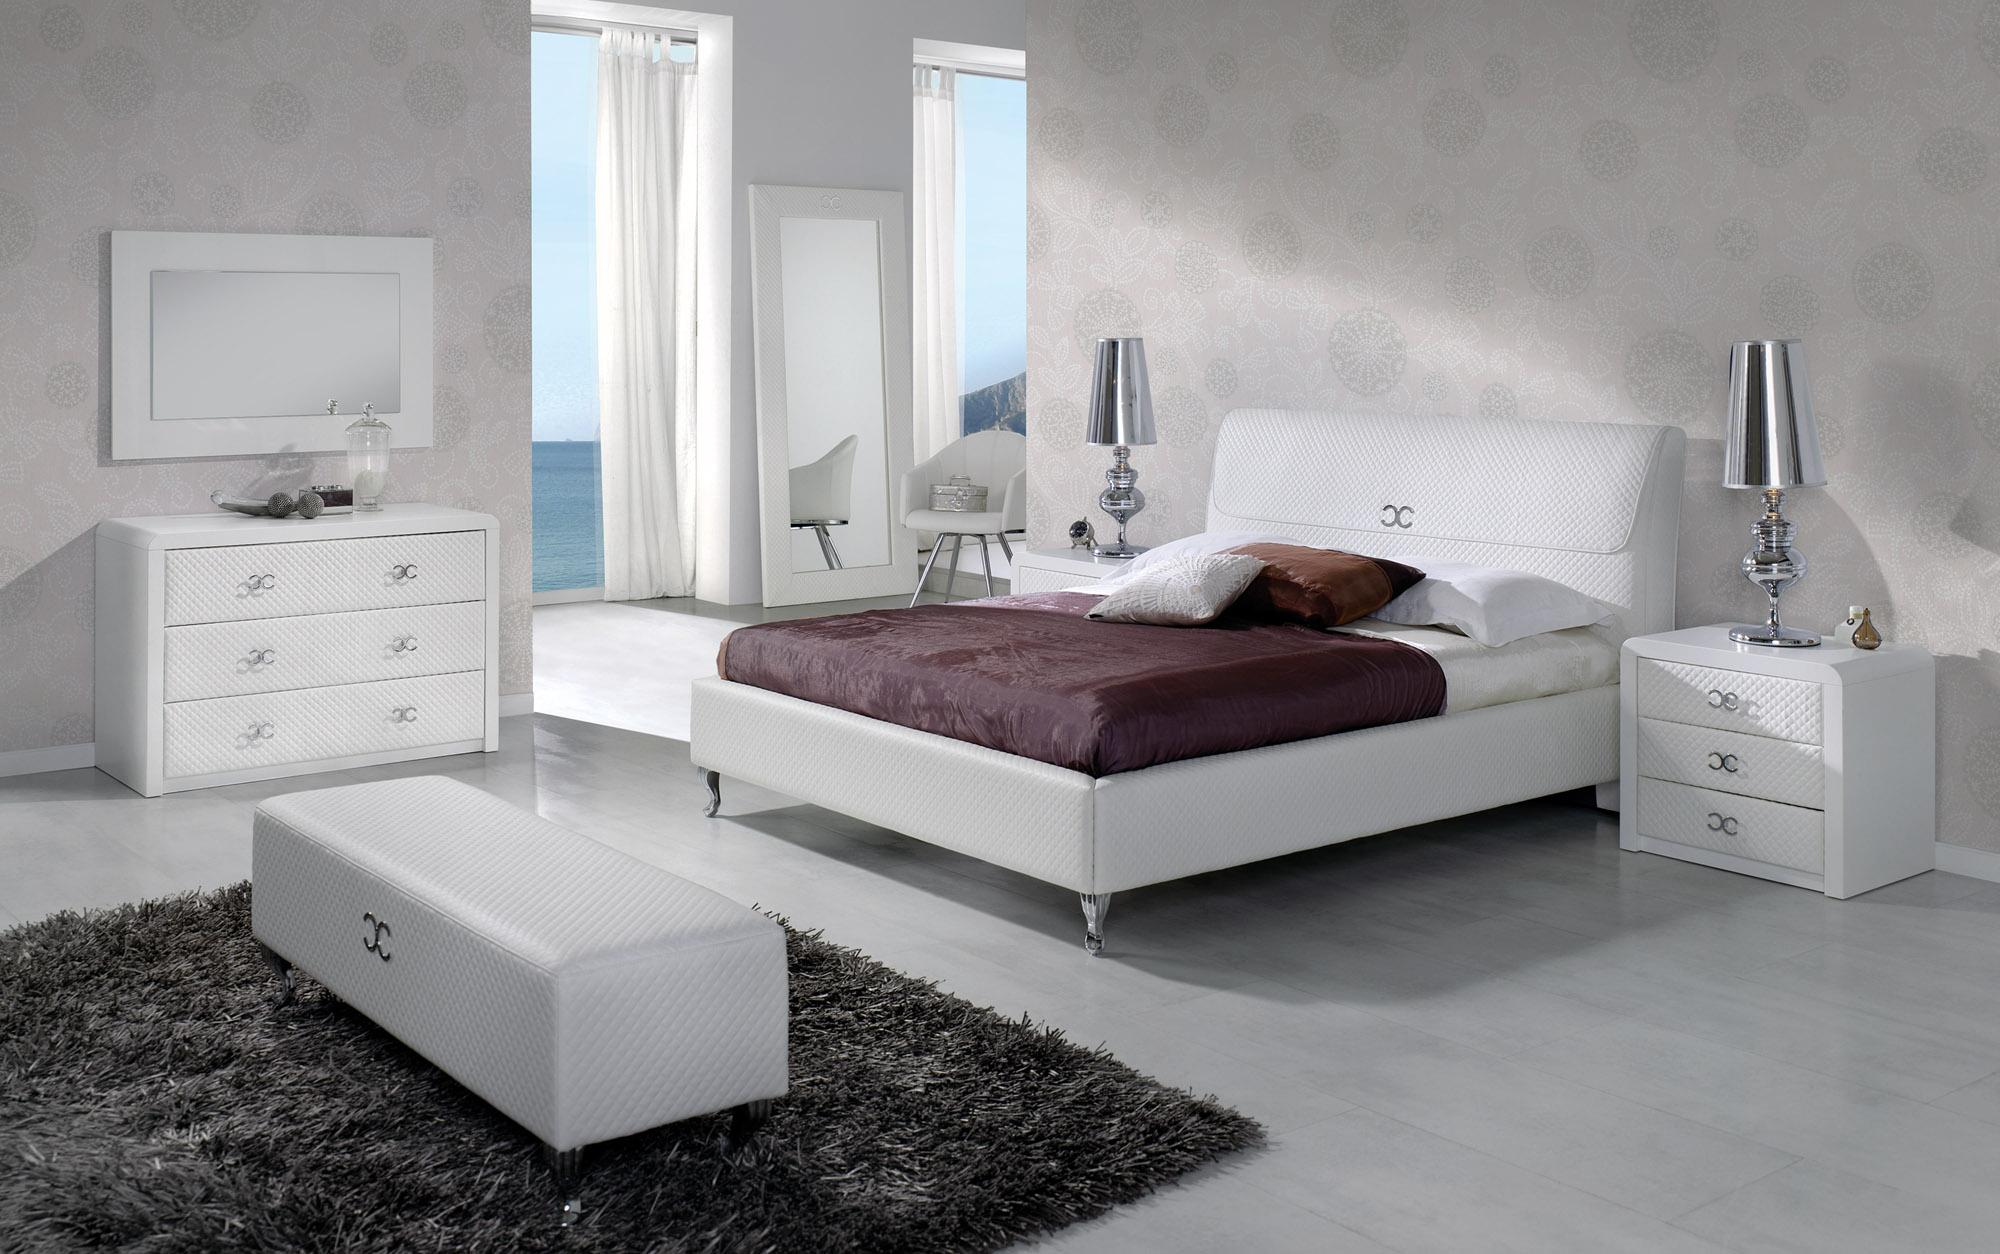 Bedroom Sets Collection  Master Furniture Made in Spain Leather Contemporary High End with Float